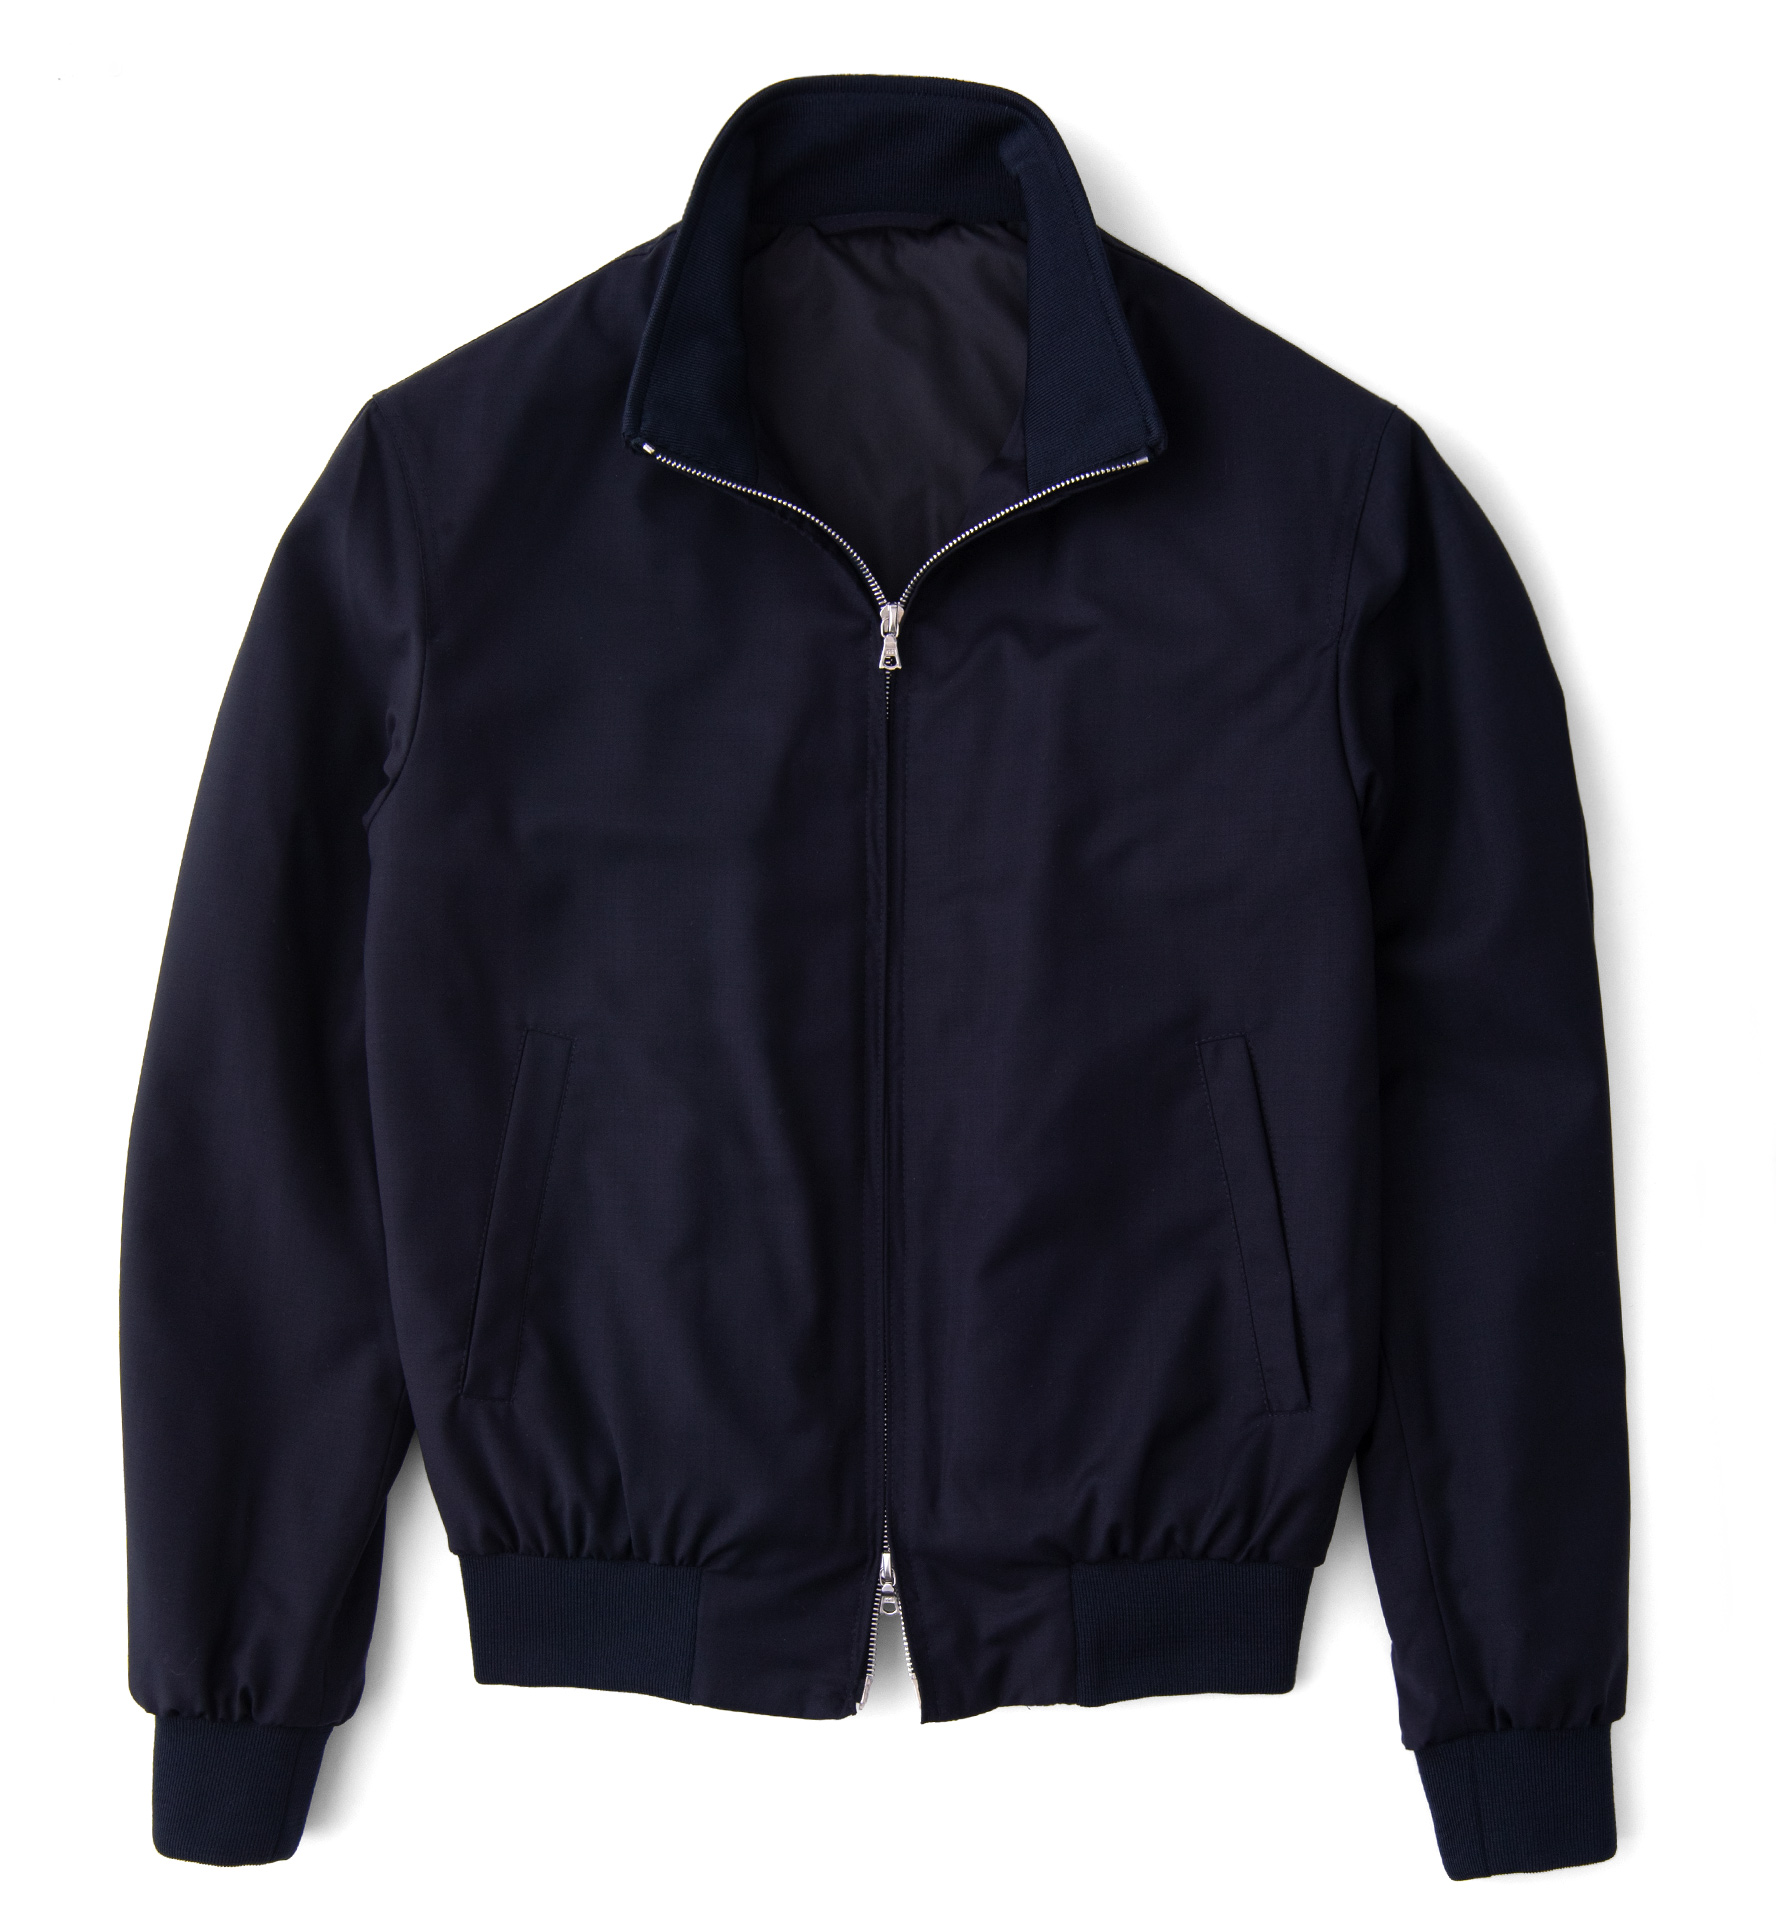 Zoom Image of Lucca Navy Performance Wool Jacket